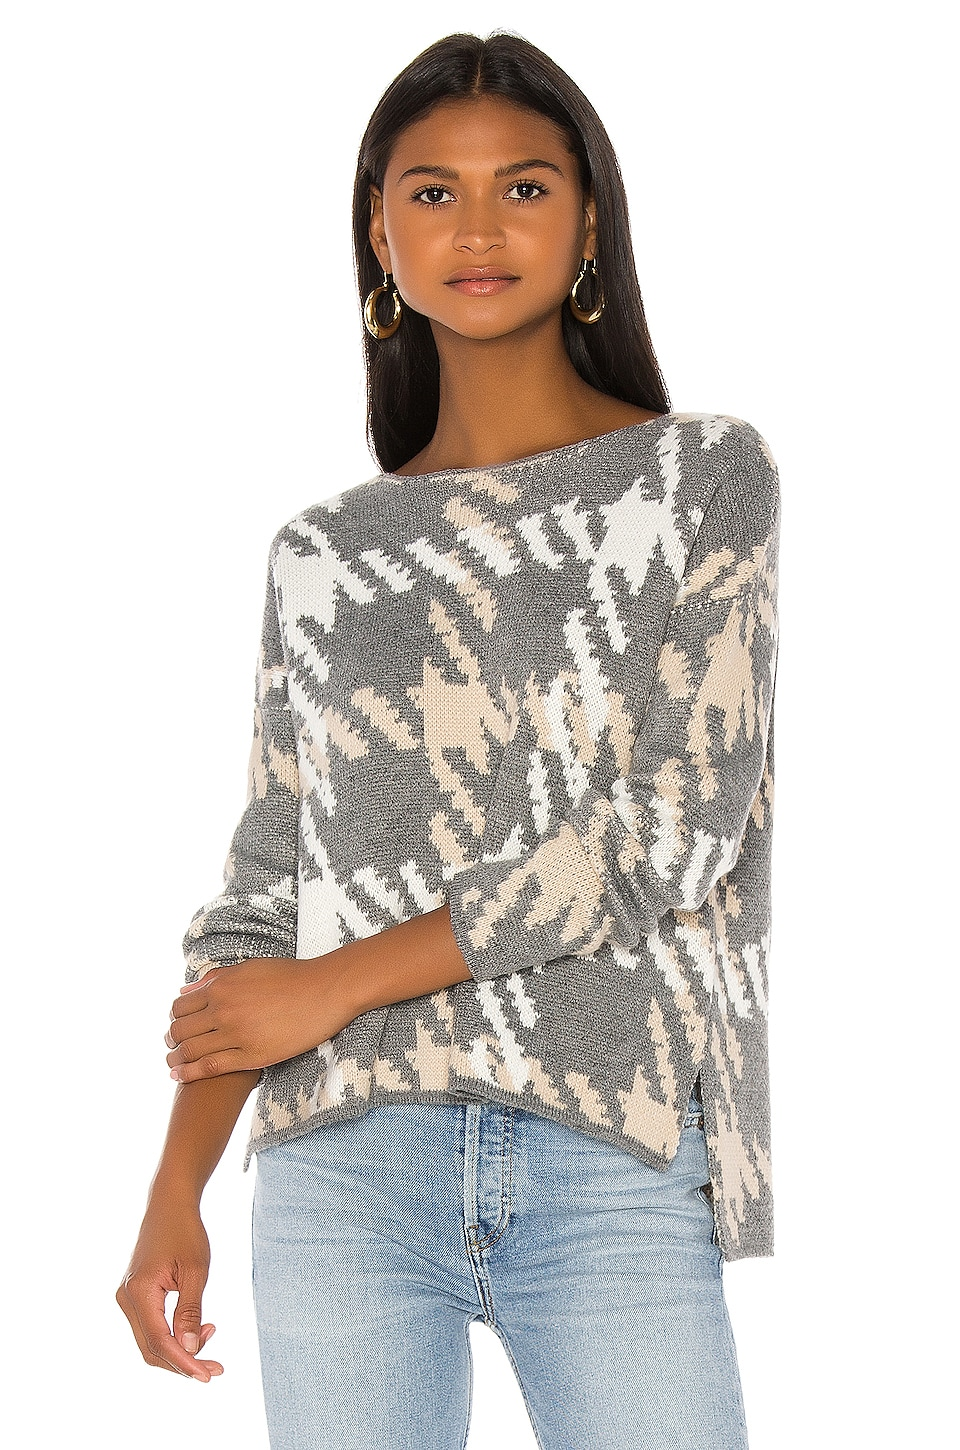 Central Park West Arlo Pullover in Charcoal